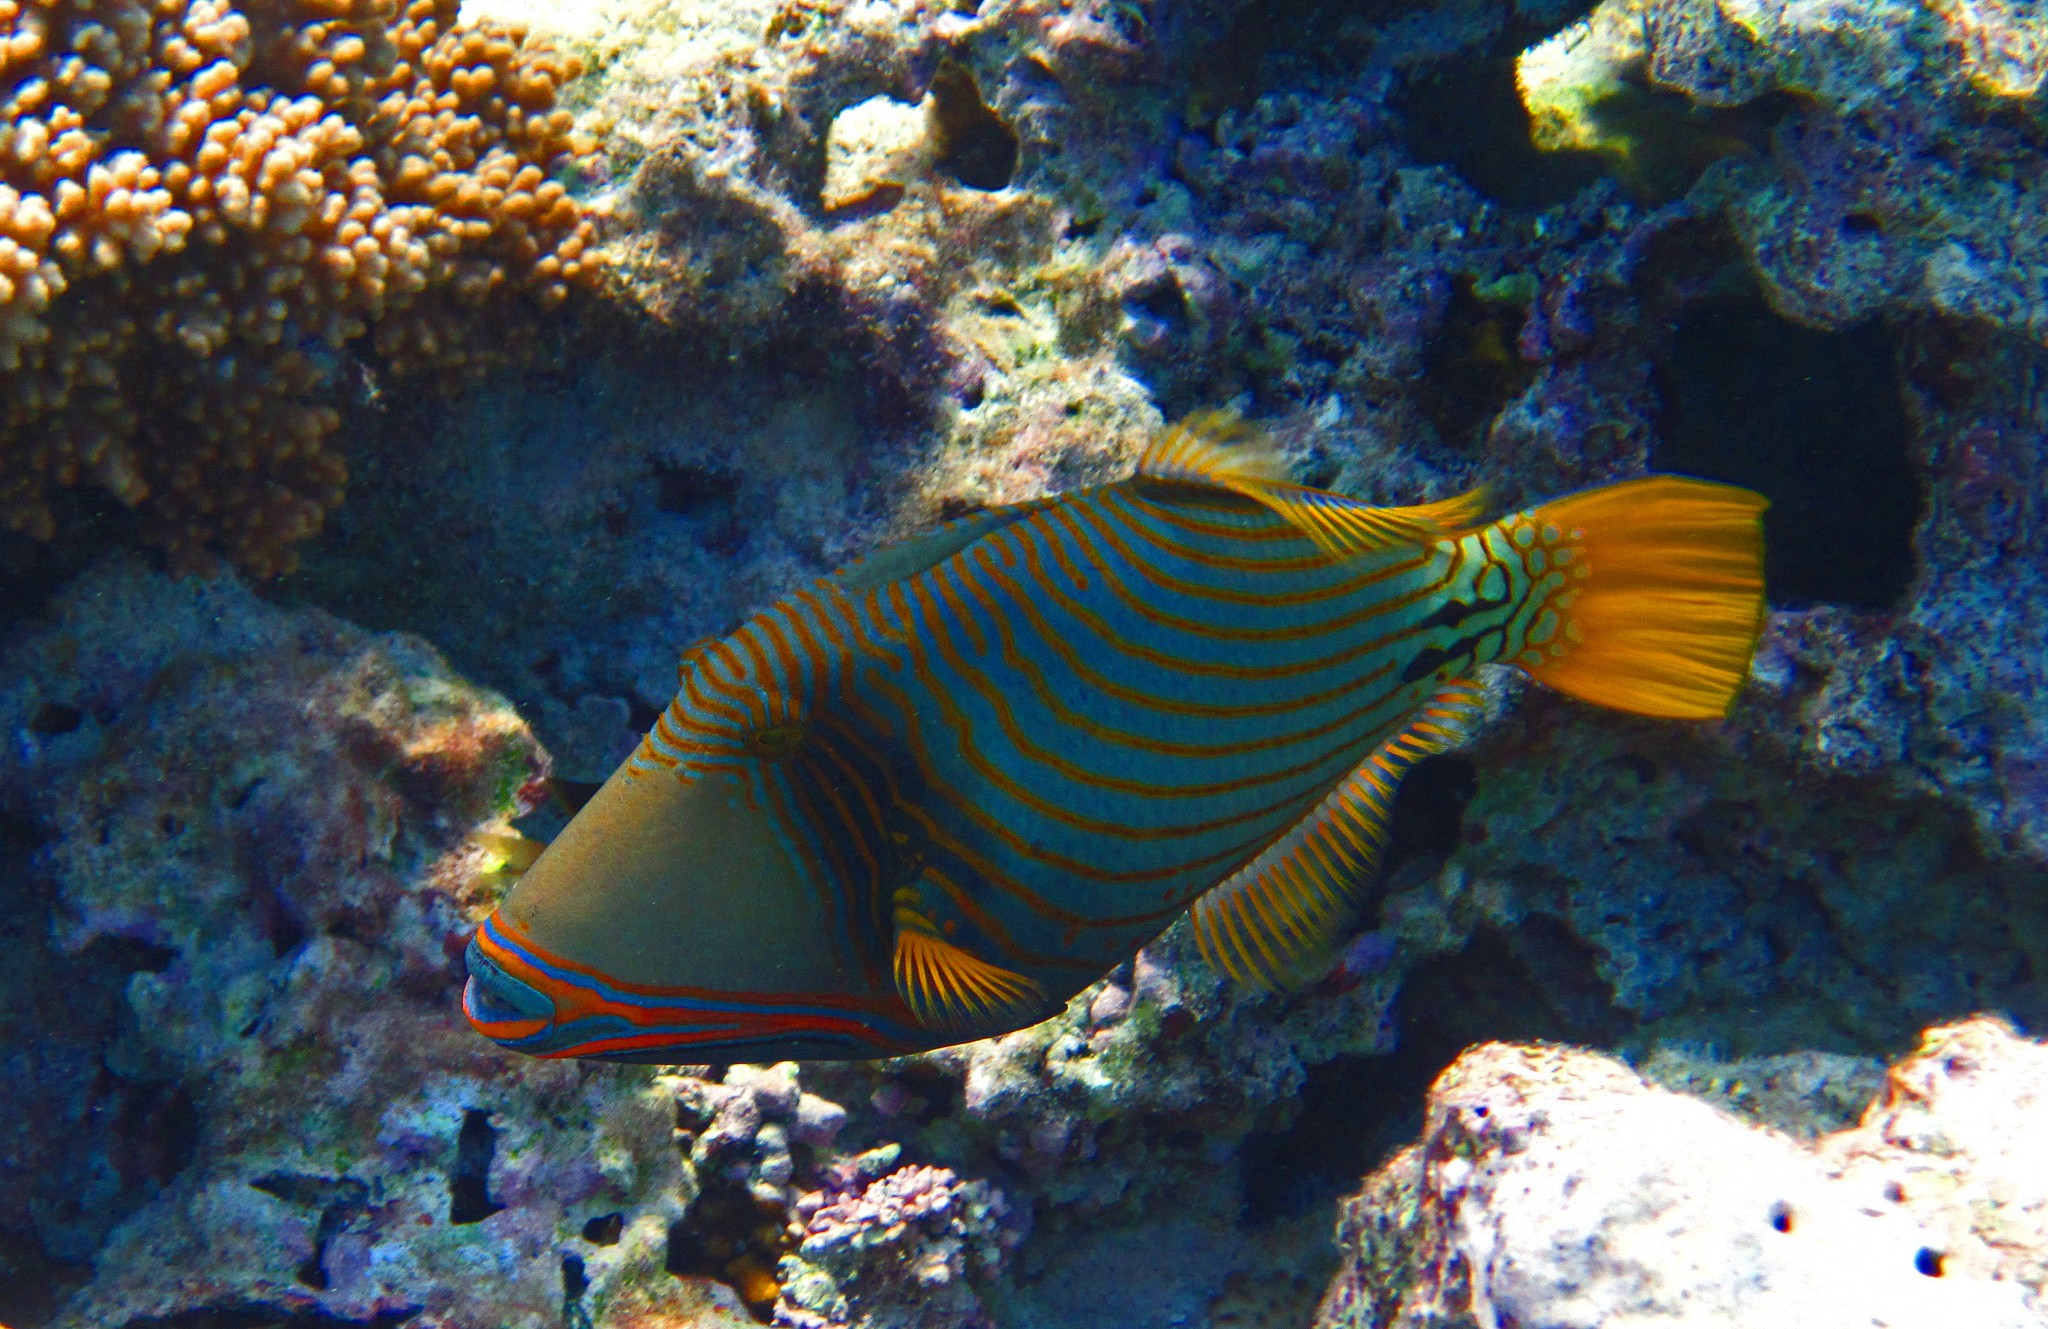 Orangestriped triggerfish swims wallpaper